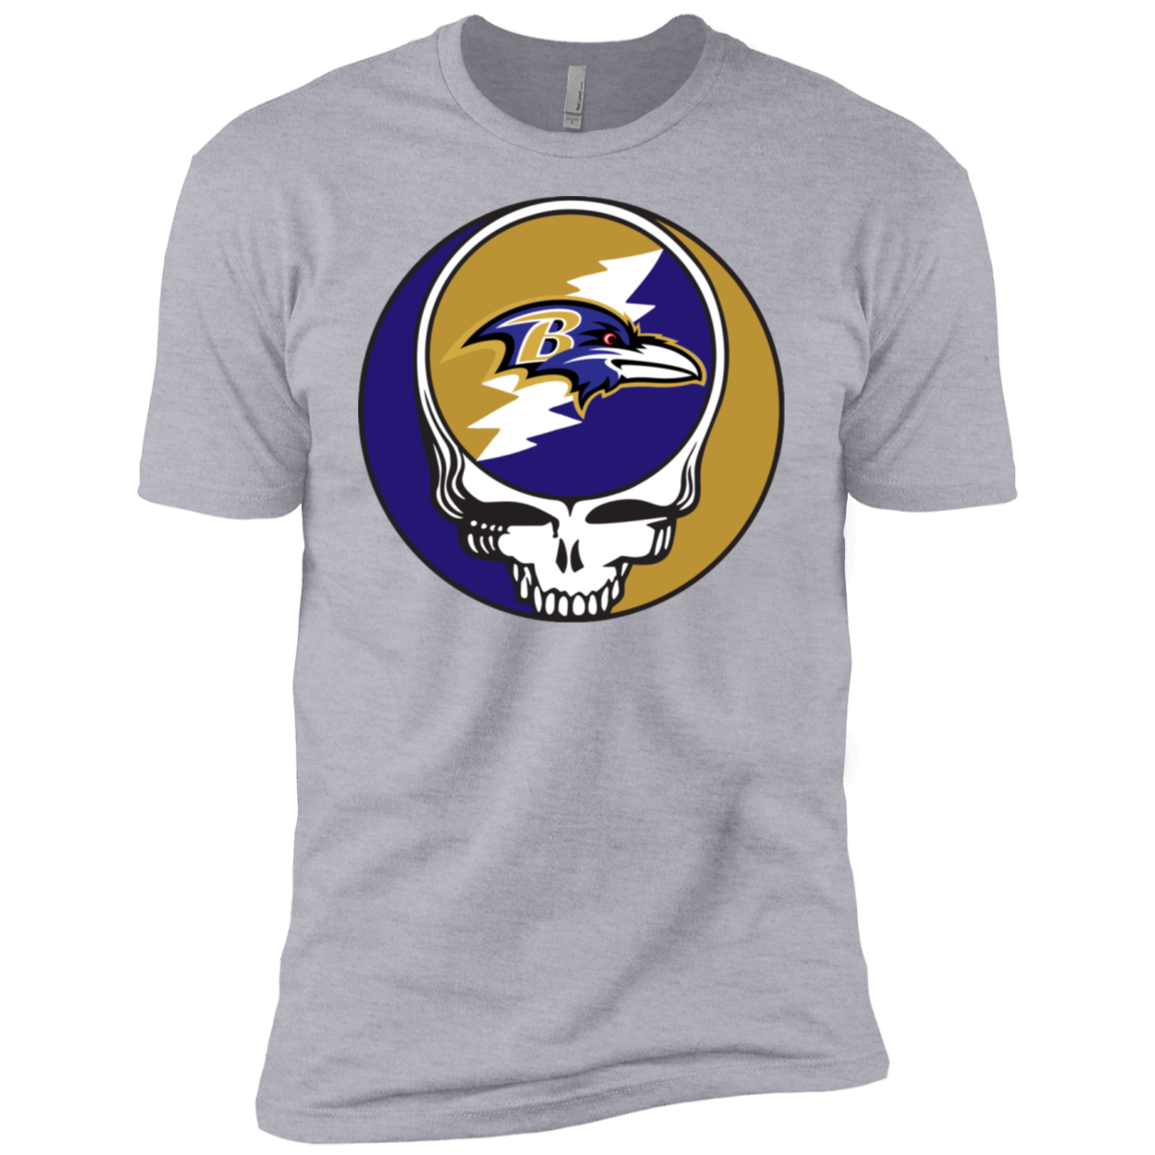 Ravens Grateful Dead Design Men's Short Sleeve T-Shirt